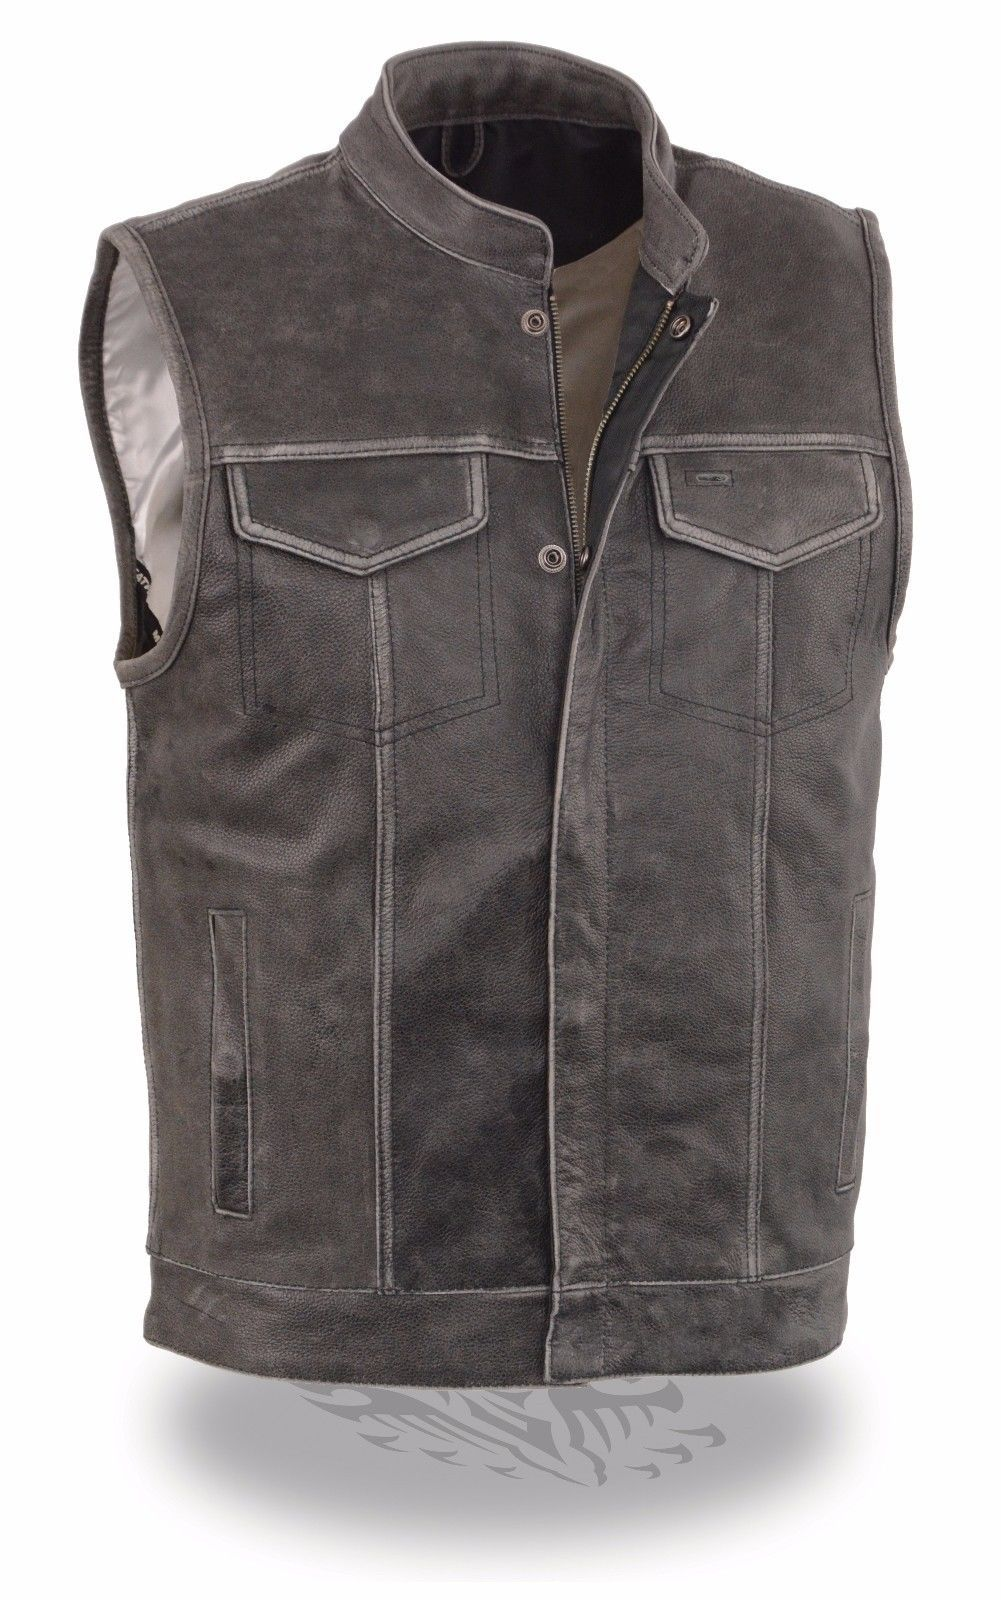 MEN'S DISTRESSED GREY MOTORCYCLE SON OF ANARCHY STYLE LEATHER VEST W/GUN POCKETS